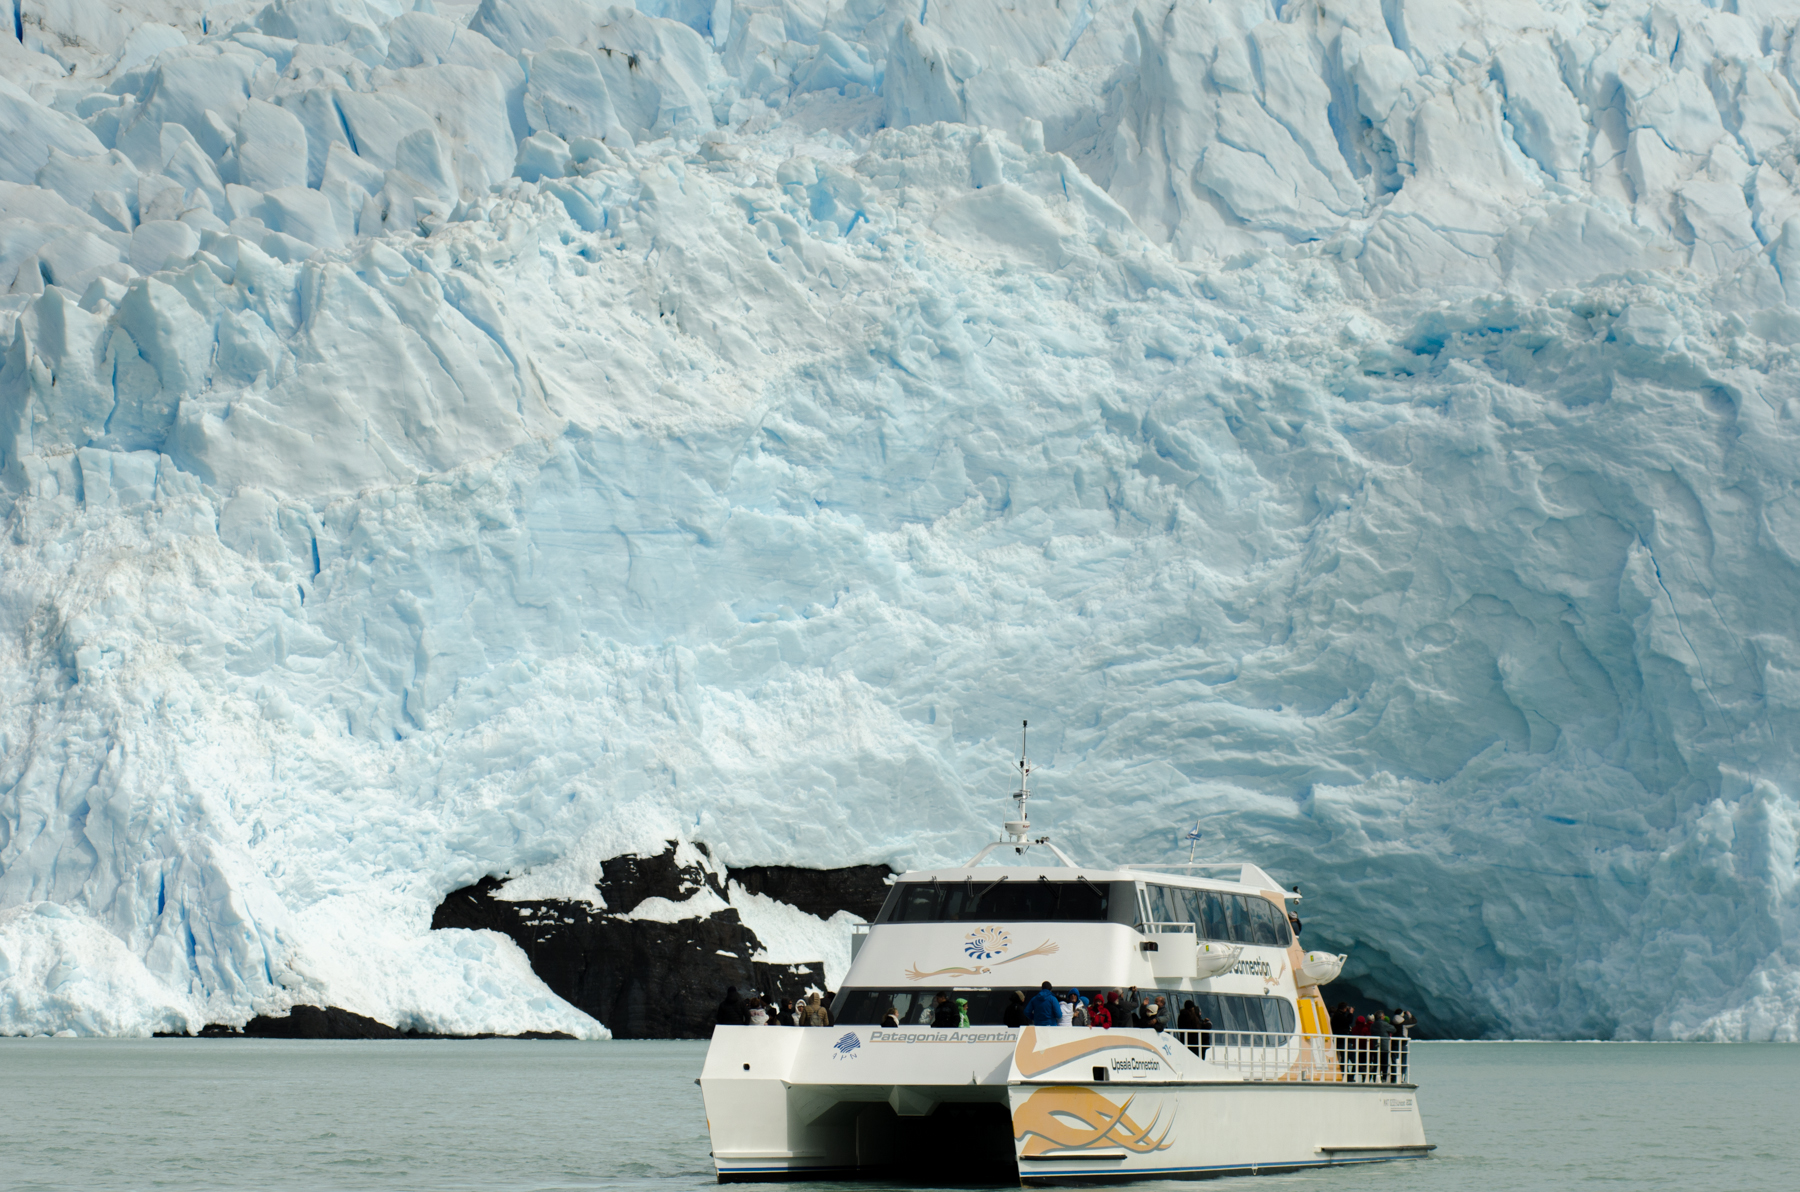 Sailing to the Spegazzini Glacier